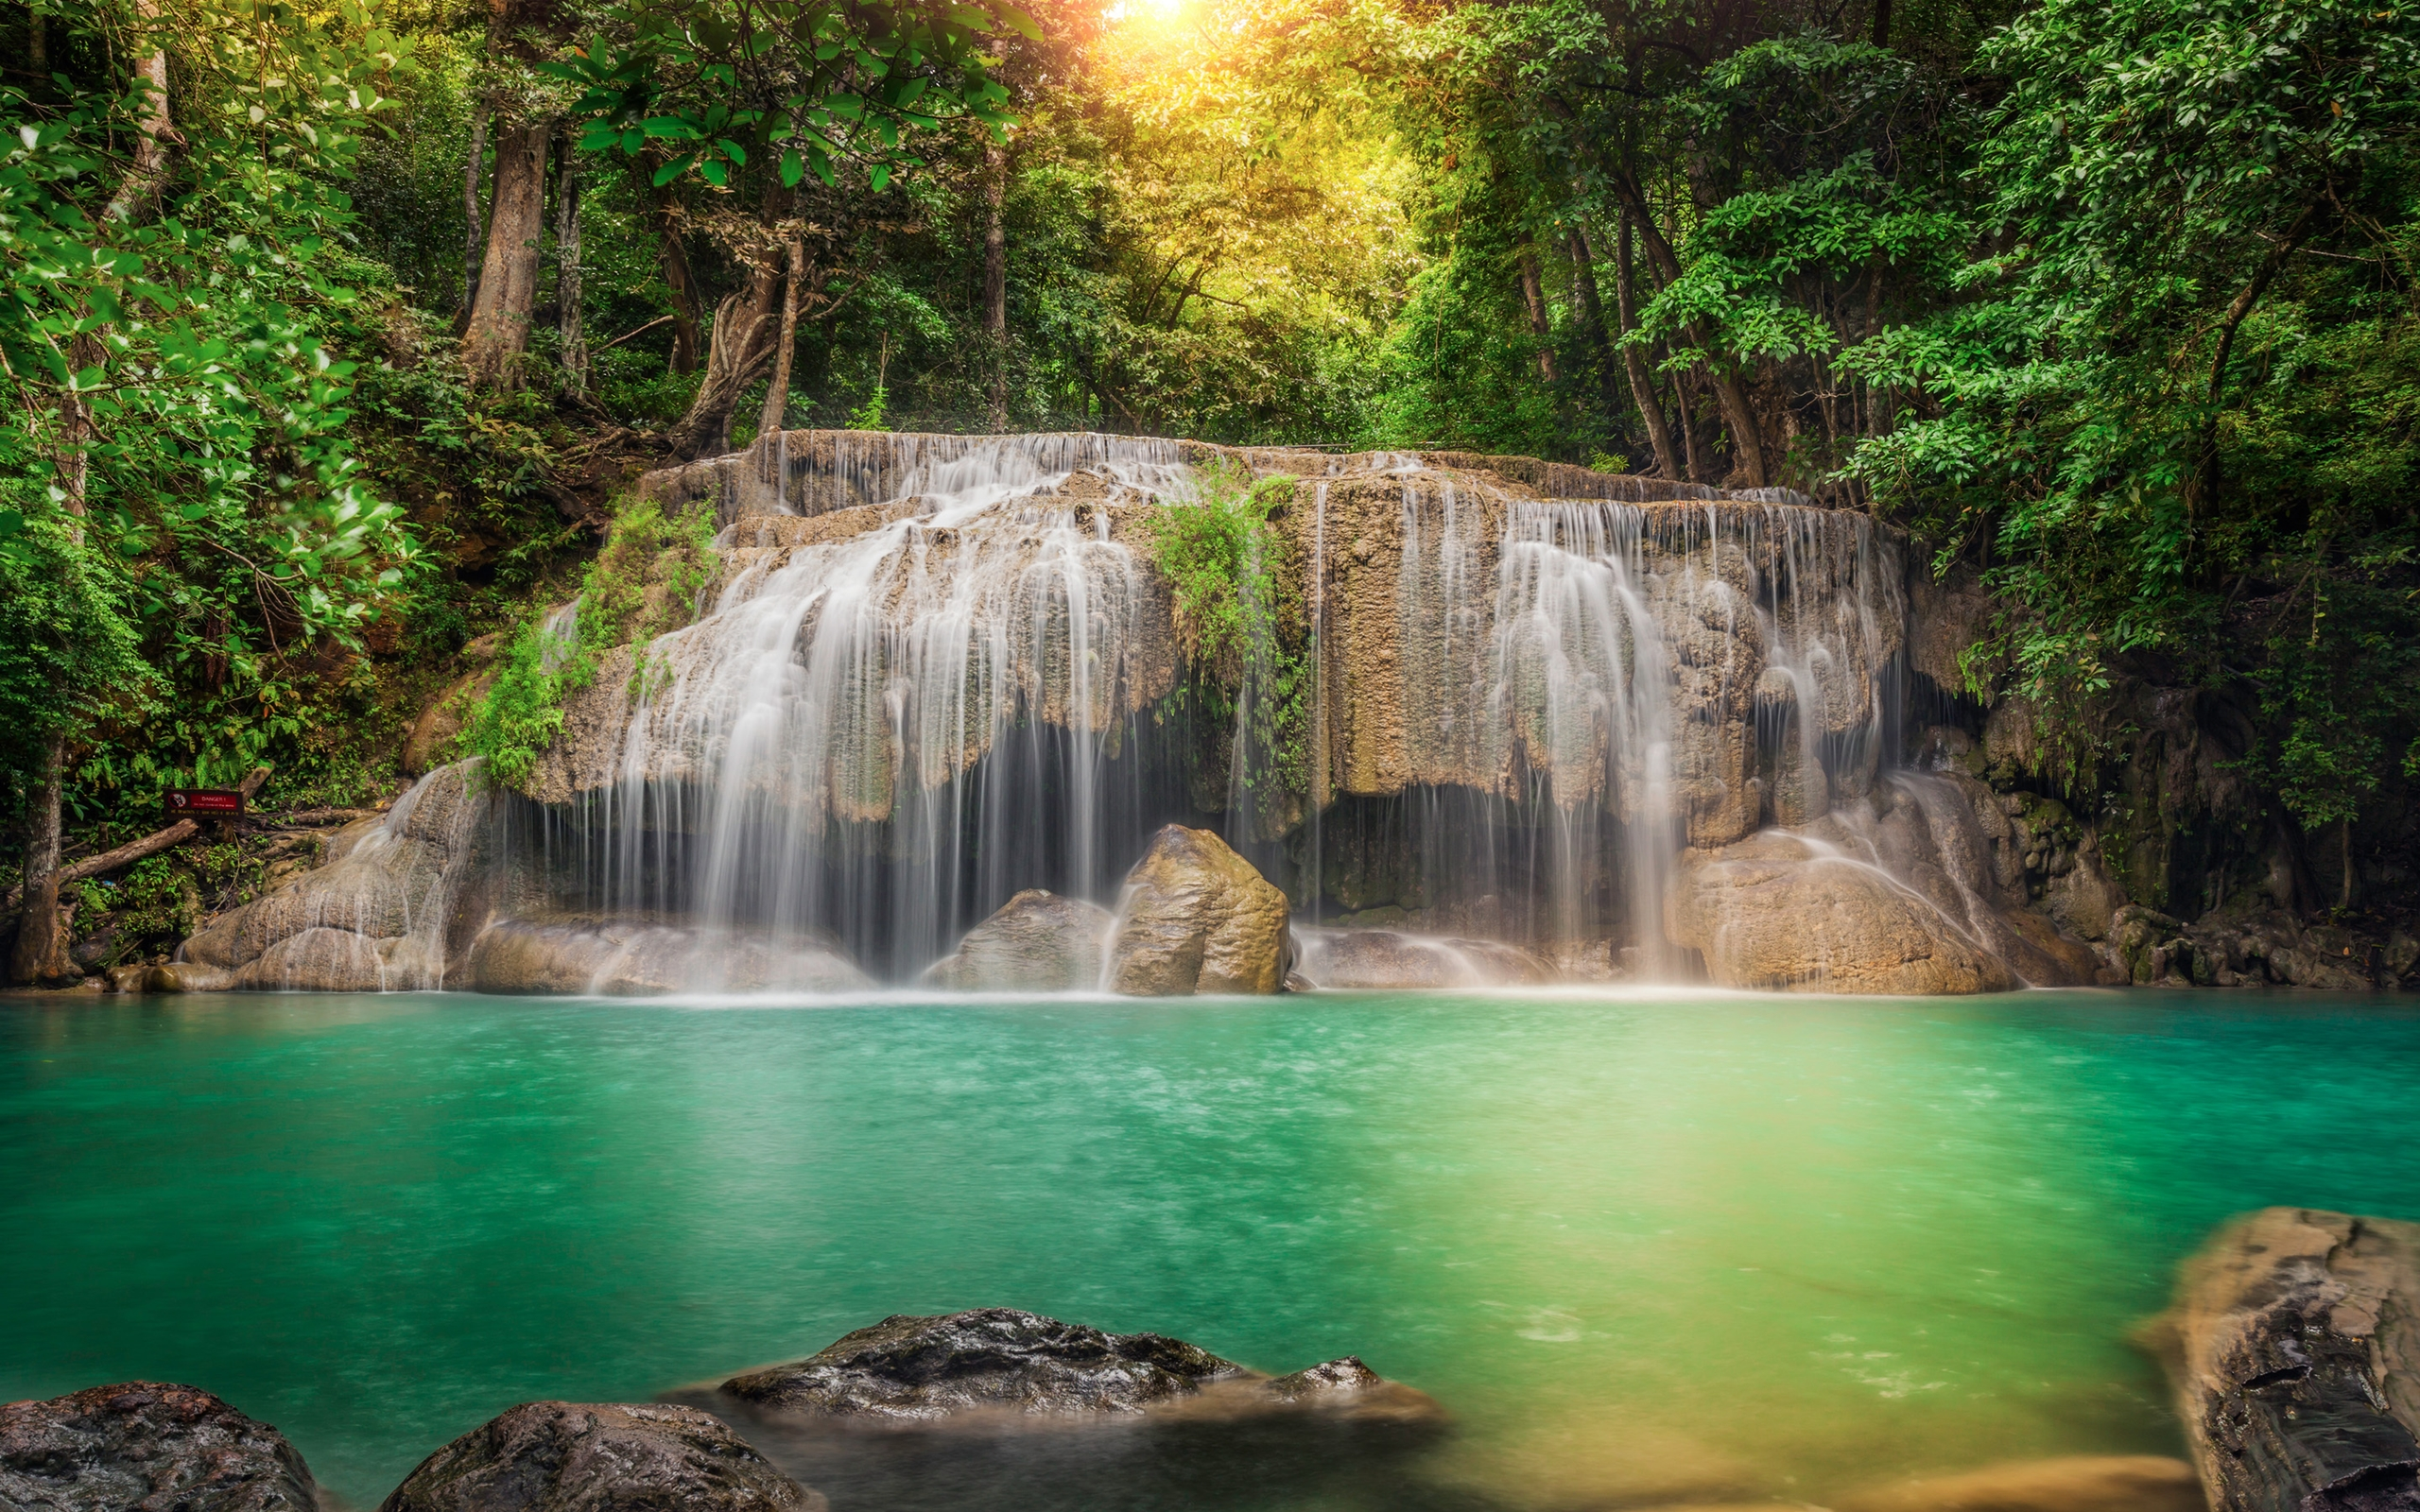 Windows Wallpaper Fall Thailand Stream Cascade Rocks Jungles Waterfalls Forest